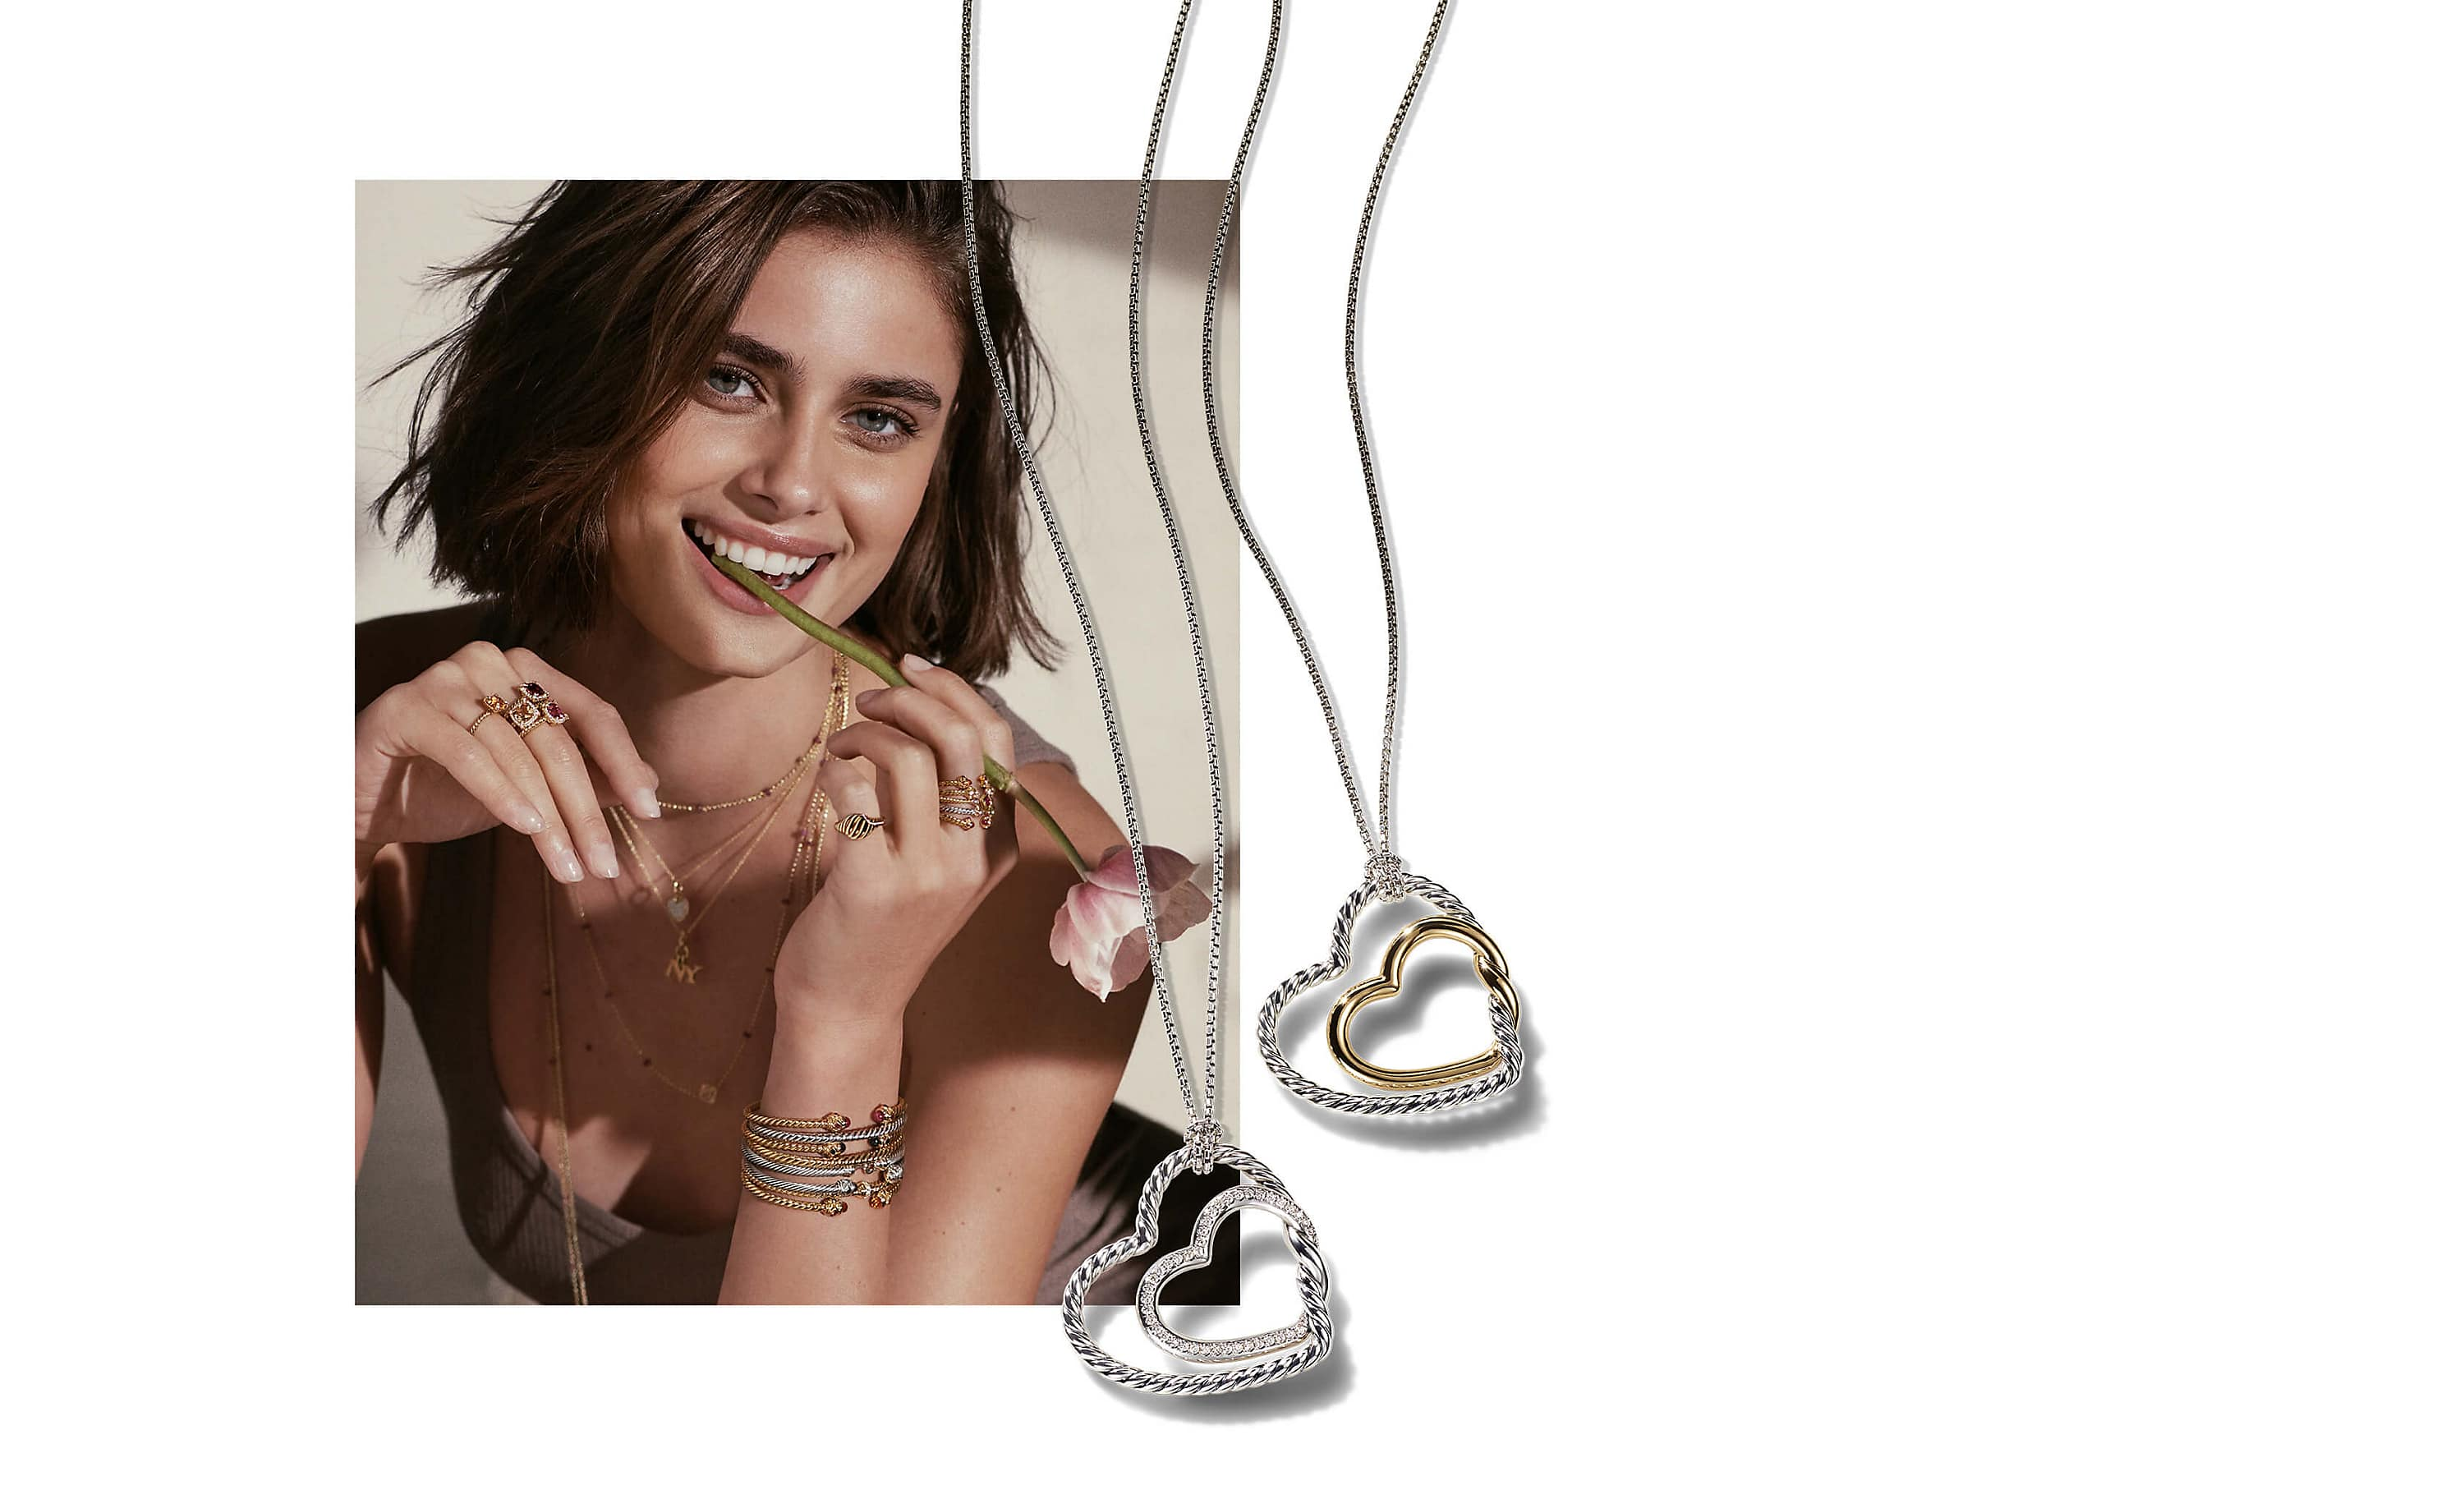 A color photo shows model Taylor Hill from the waist up holding a pink-and-white flower in her hand with the stem in her mouth. She's wearing multiple David Yurman necklaces, rings and bracelets stacked together in 18K yellow gold or sterling silver with various colored gemstones. Juxtaposed on top of the image of Taylor Hill is a color photo showing two David Yurman Continuance heart necklaces. One necklace is crafted from sterling silver with an 18K yellow gold inner heart and the other necklace is crafted from sterling silver with pavé diamond accents on the inner heart.